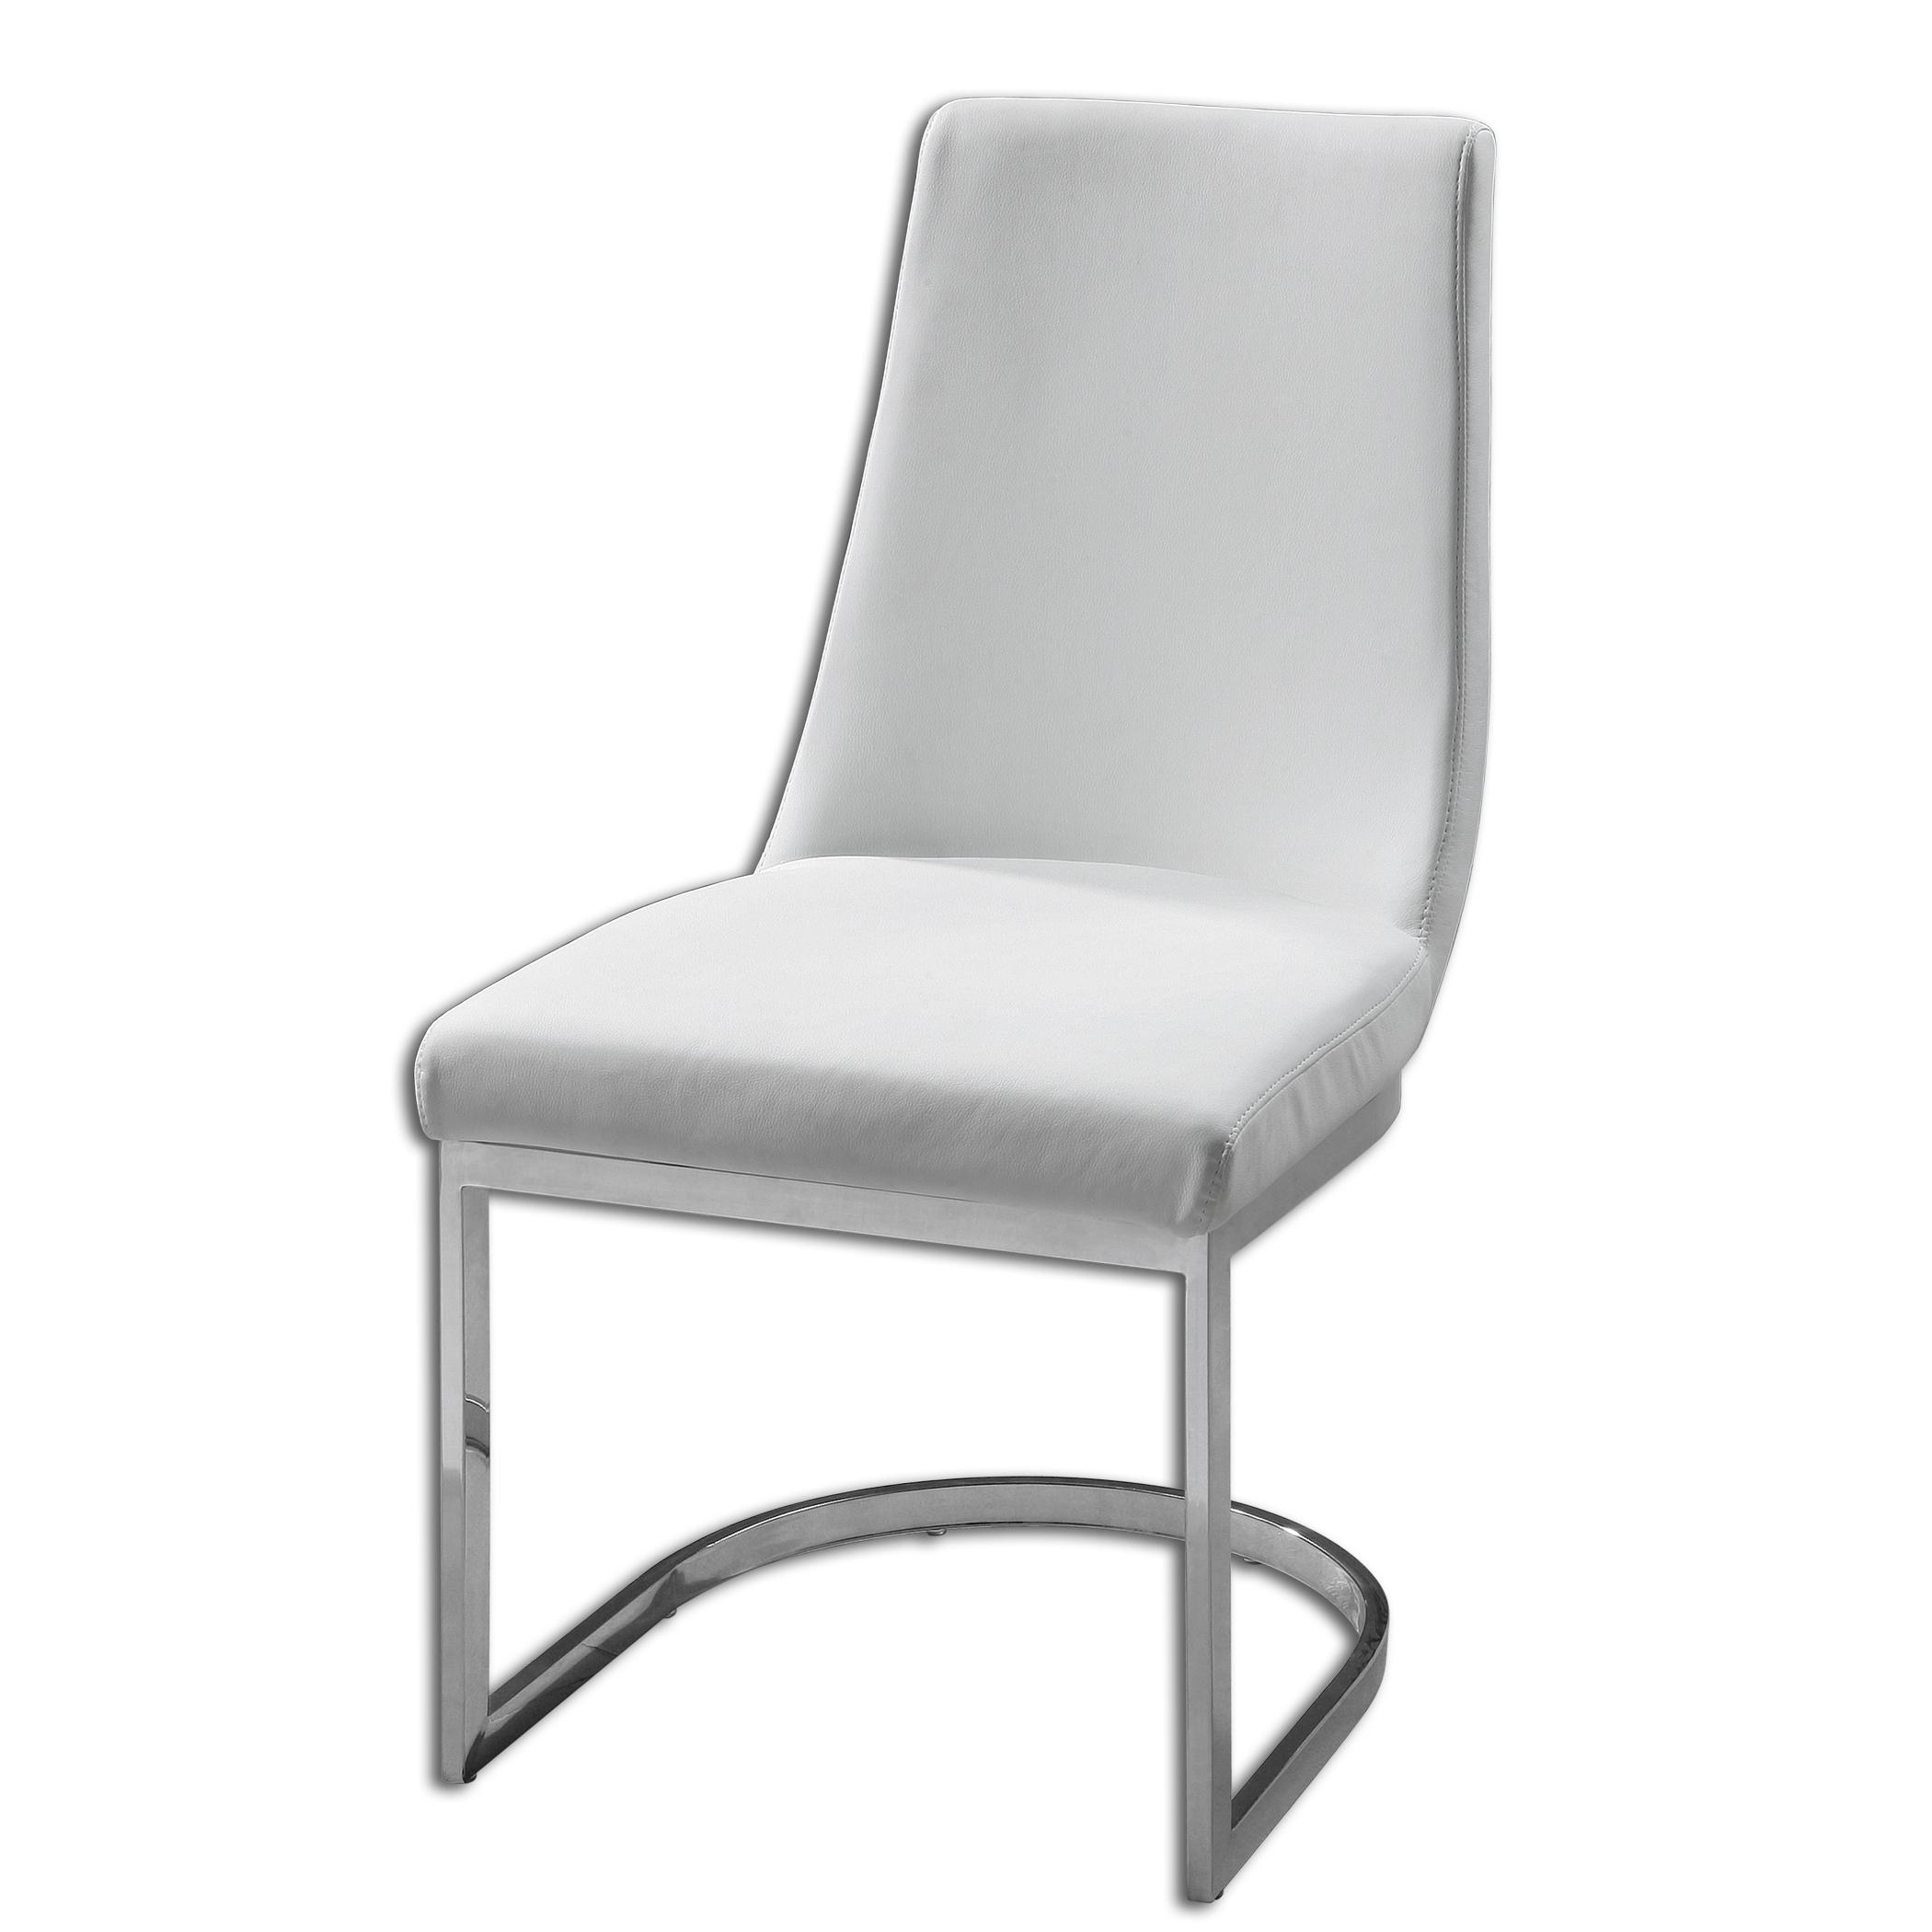 Uttermost Accent Furniture Xantina White Accent Chair - Item Number: 23141